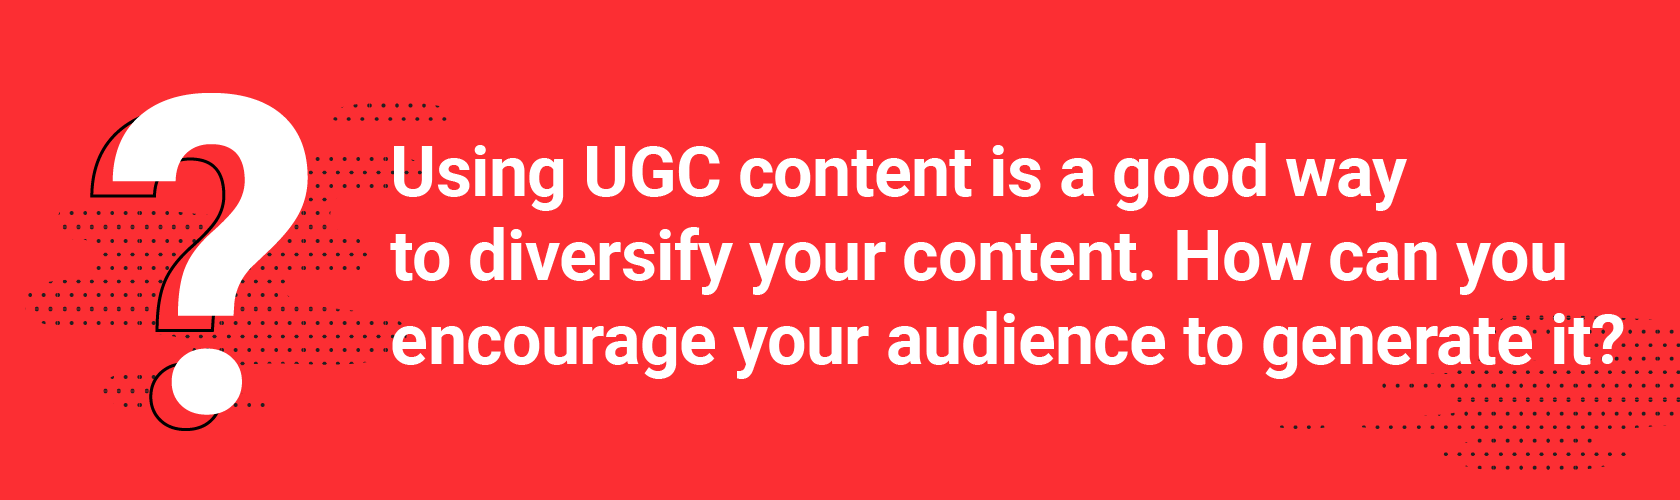 Q5. Using UGC content is a good way to diversify your content. How can you encourage your audience to generate it?